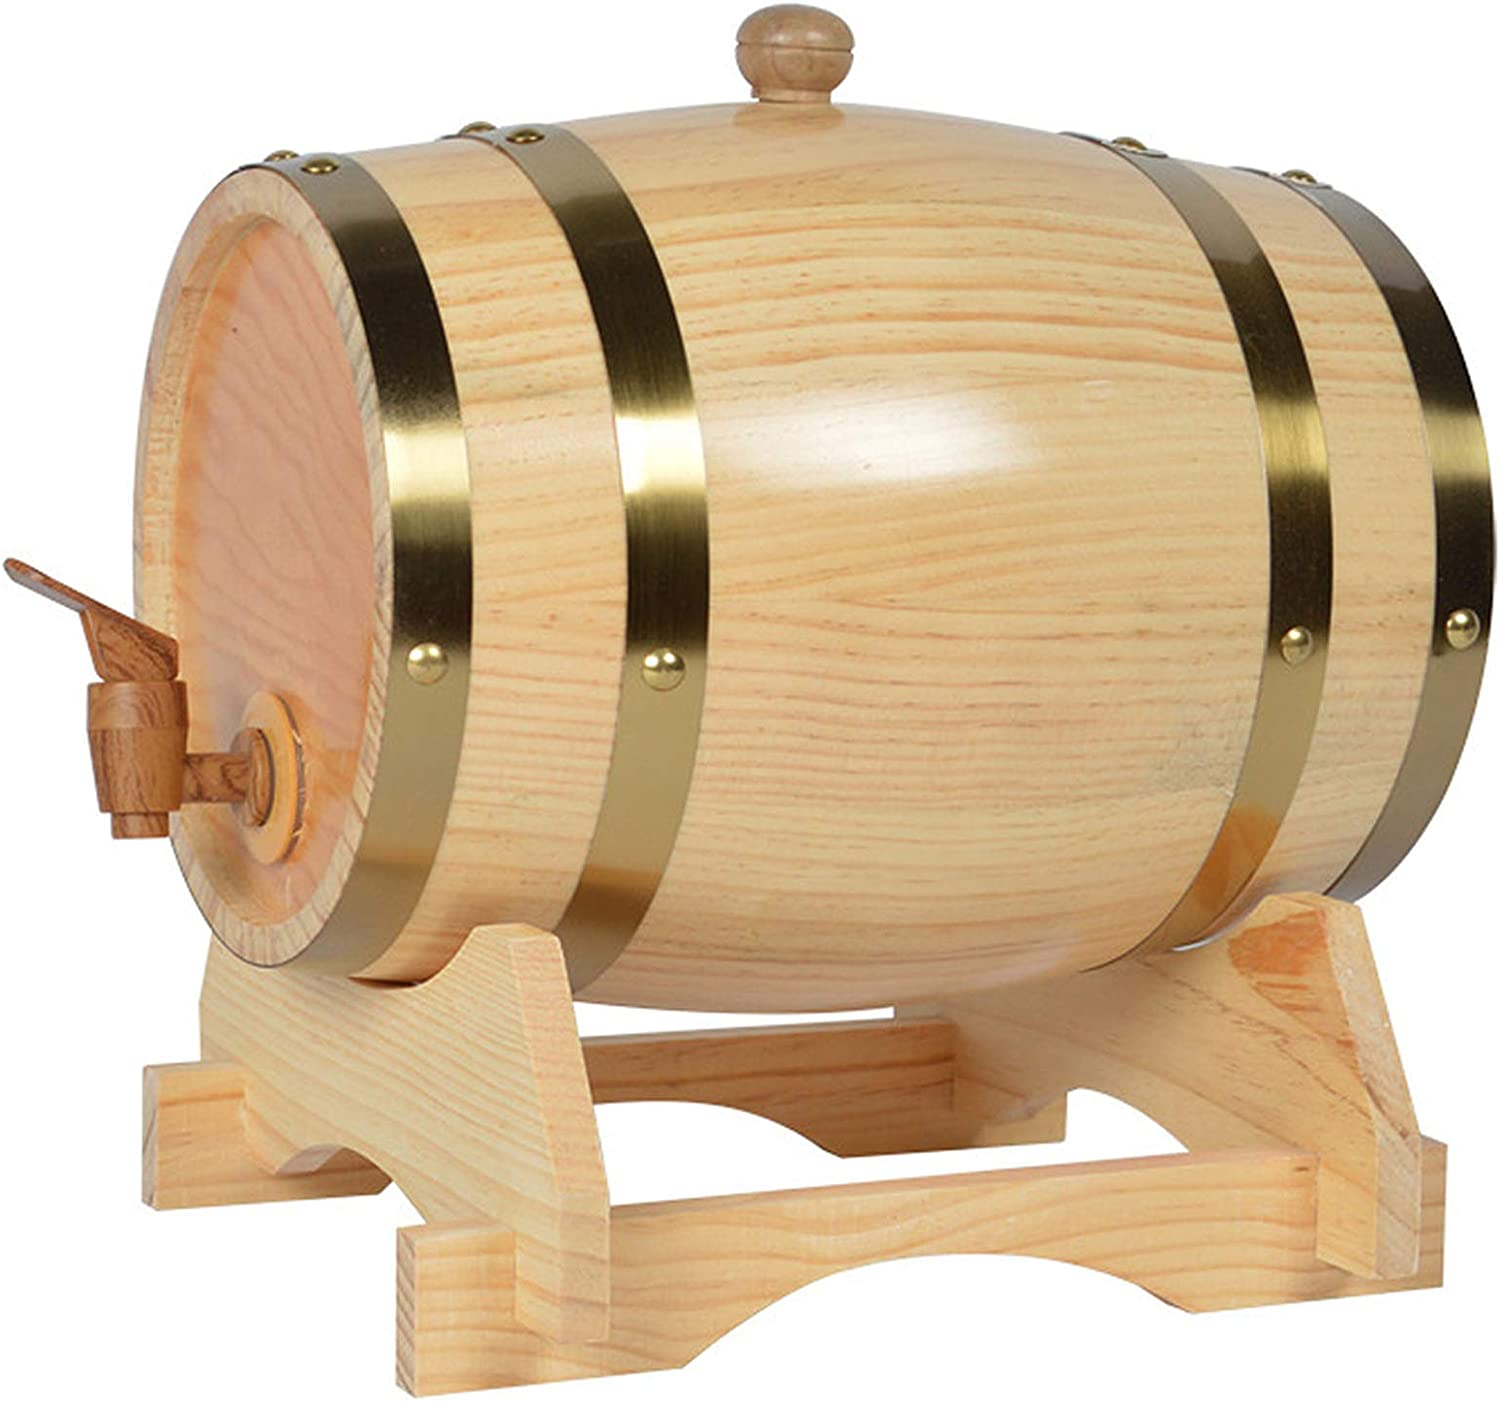 Wooden Barrel Individual Oak Barrel for Whiskey or Wine Used to Store Alcohol and Home Decoration,Beige ,1.6L Stopper and Wooden Stand Black Retro Bucket with Wood Tap